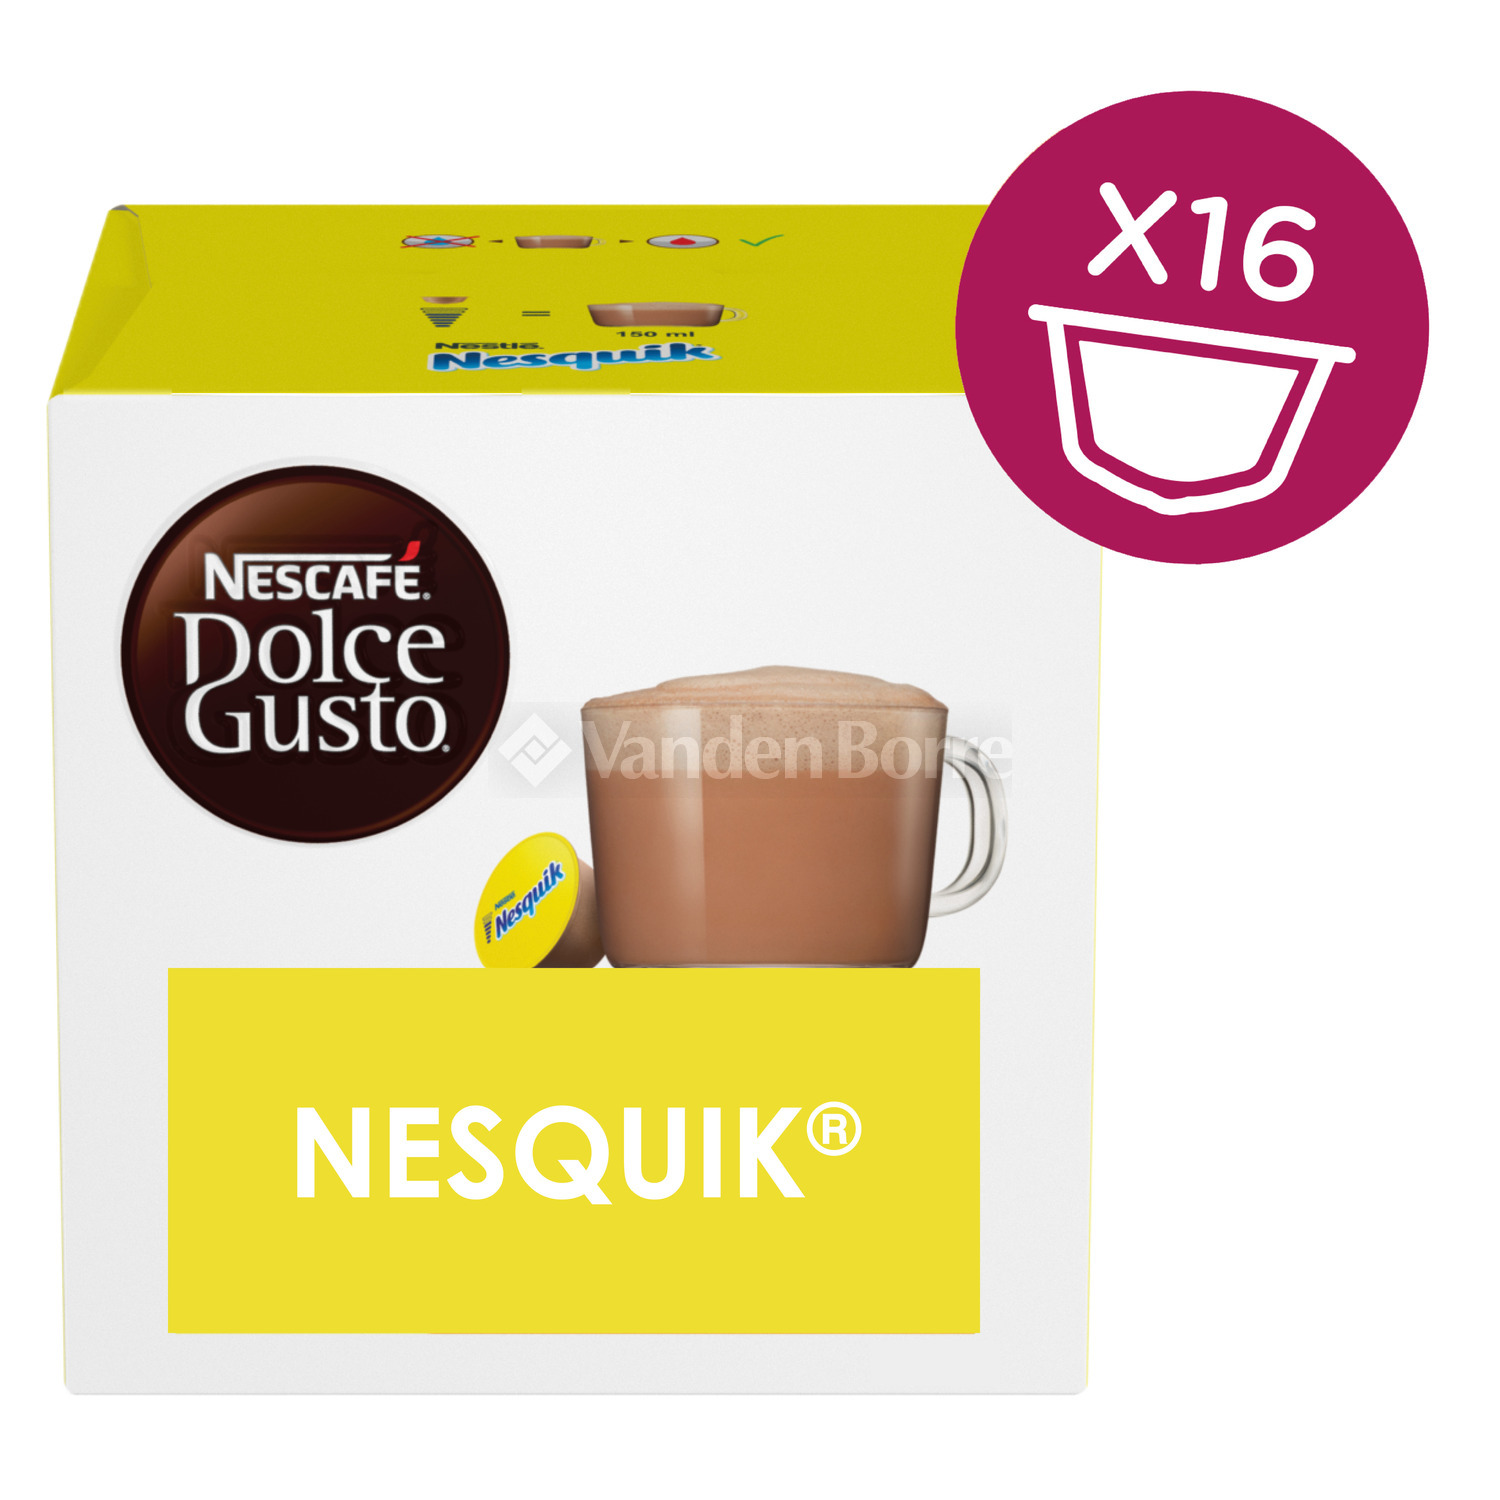 dolce gusto nesquik 16x chez vanden borre comparez et achetez facilement. Black Bedroom Furniture Sets. Home Design Ideas